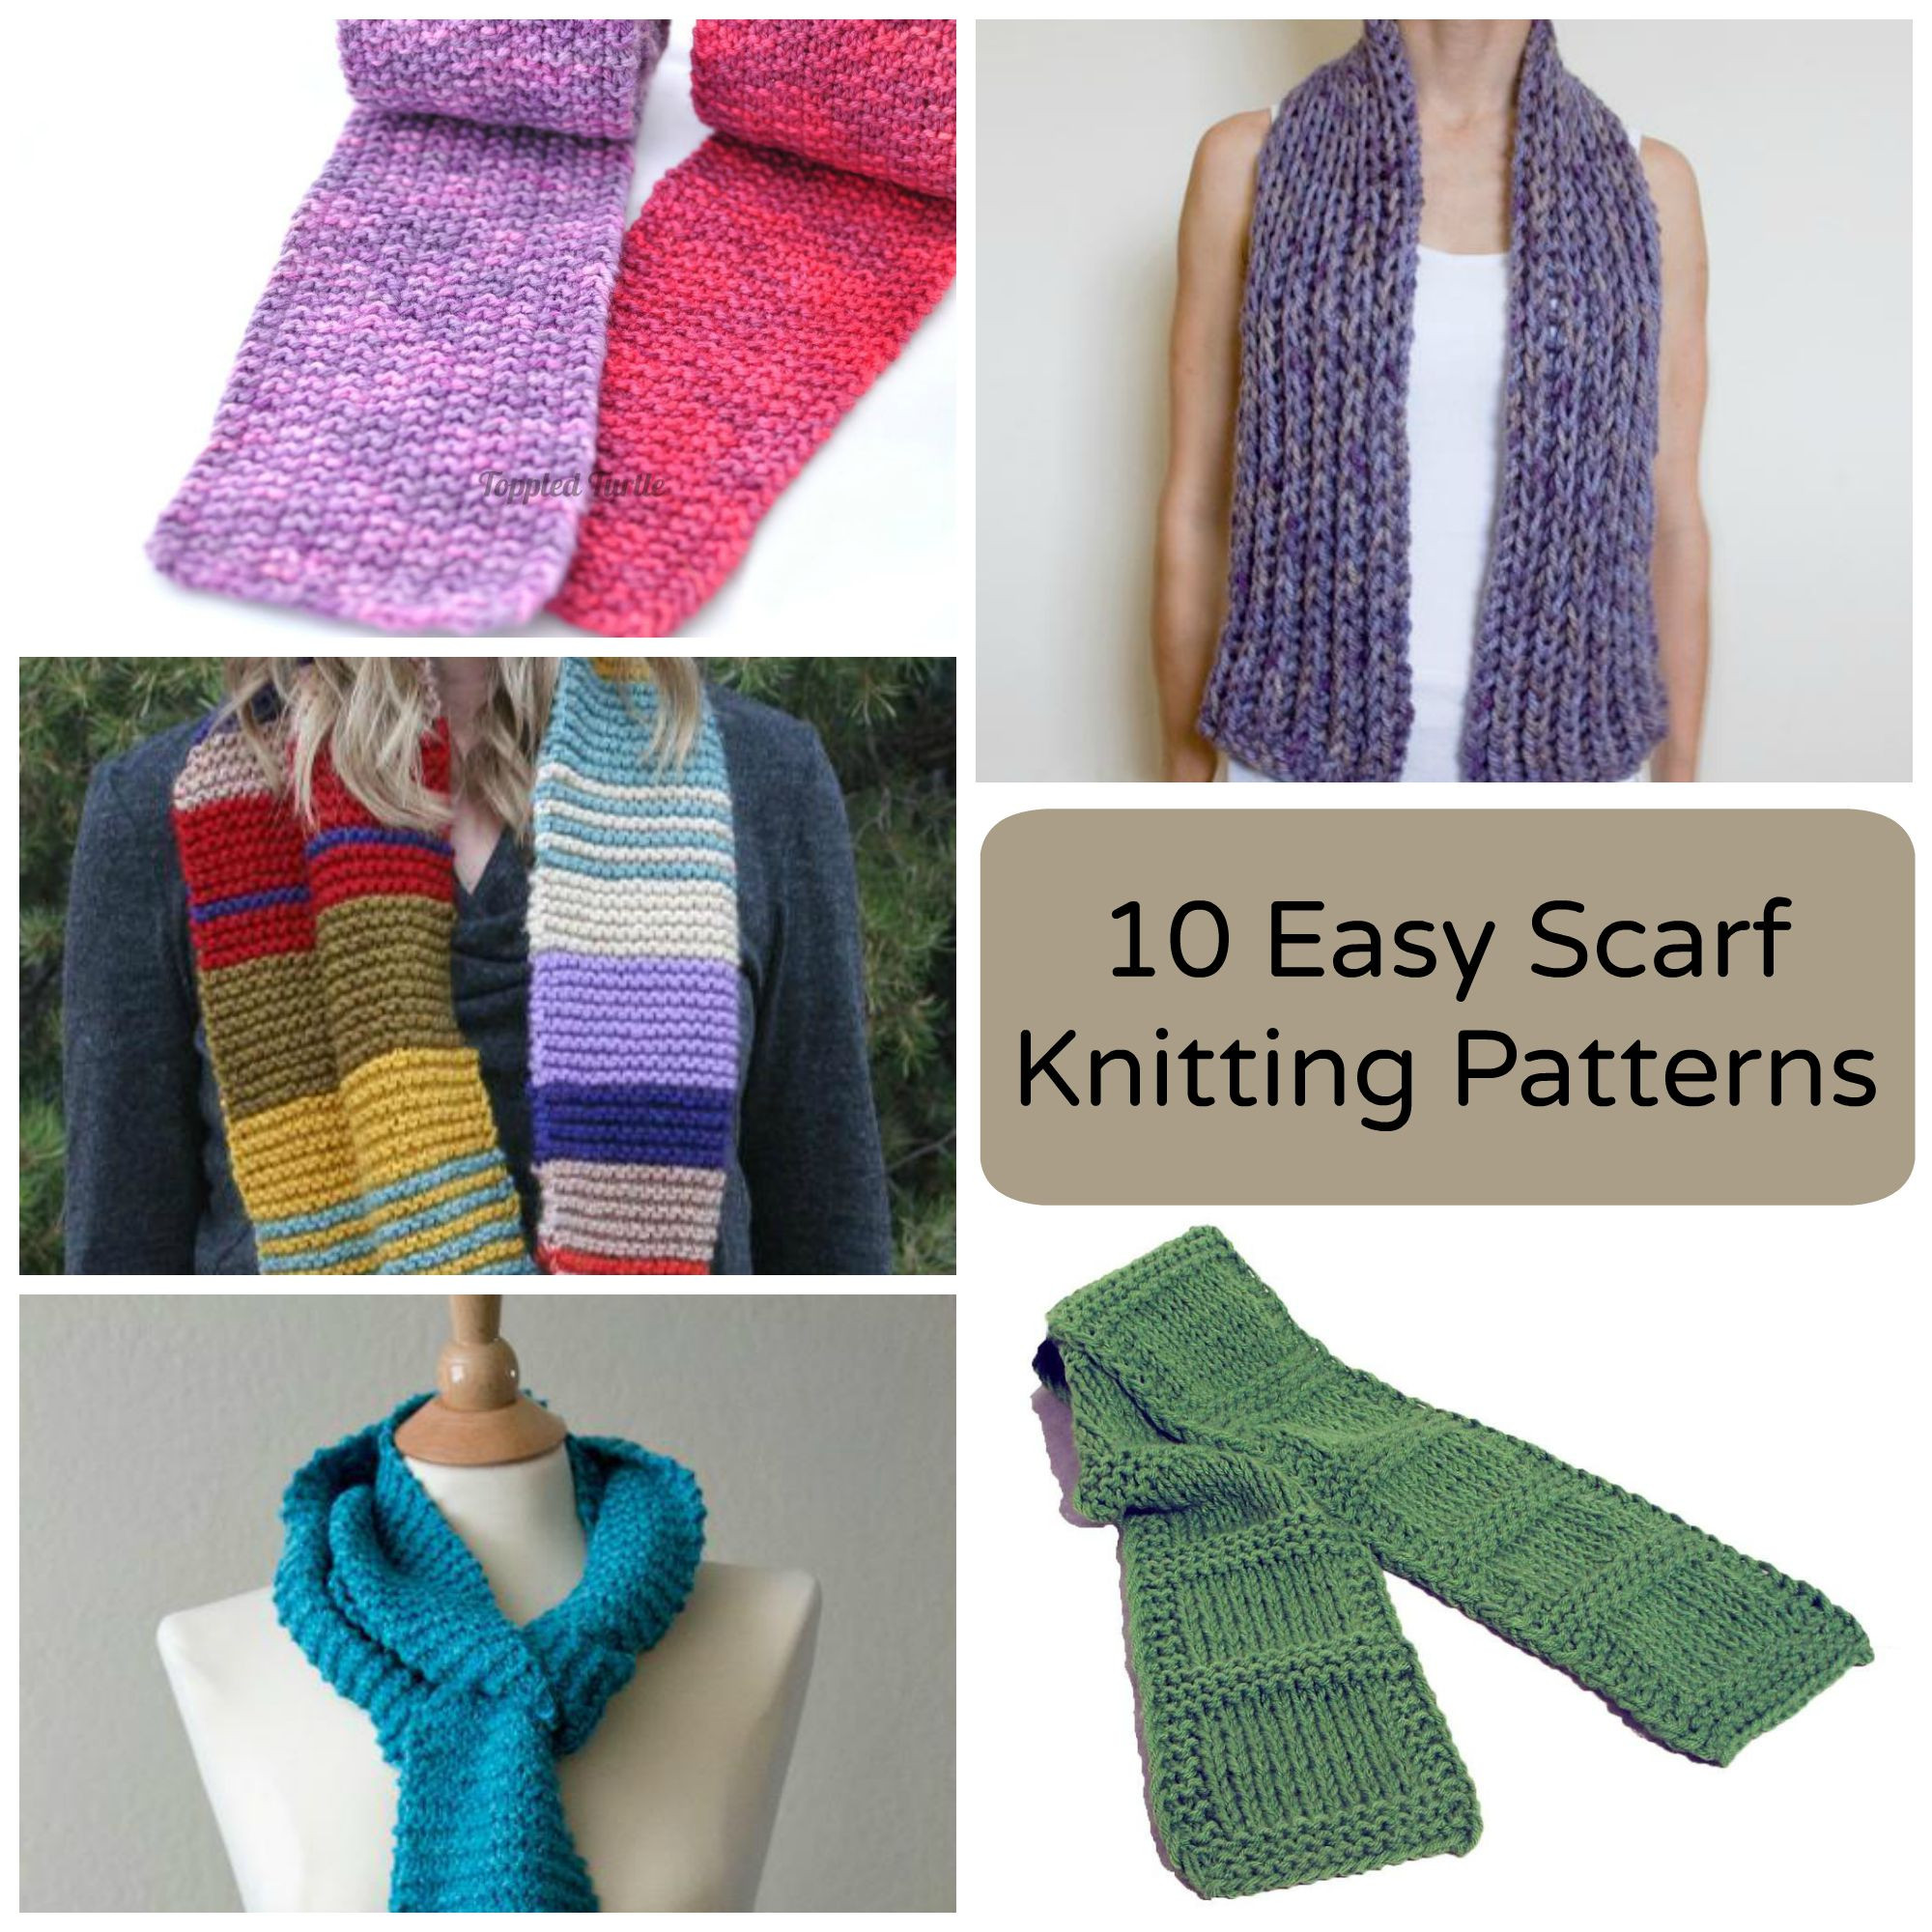 Knitting Projects Inspirational 10 Easy Scarf Knitting Patterns for Beginners Of Top 45 Ideas Knitting Projects